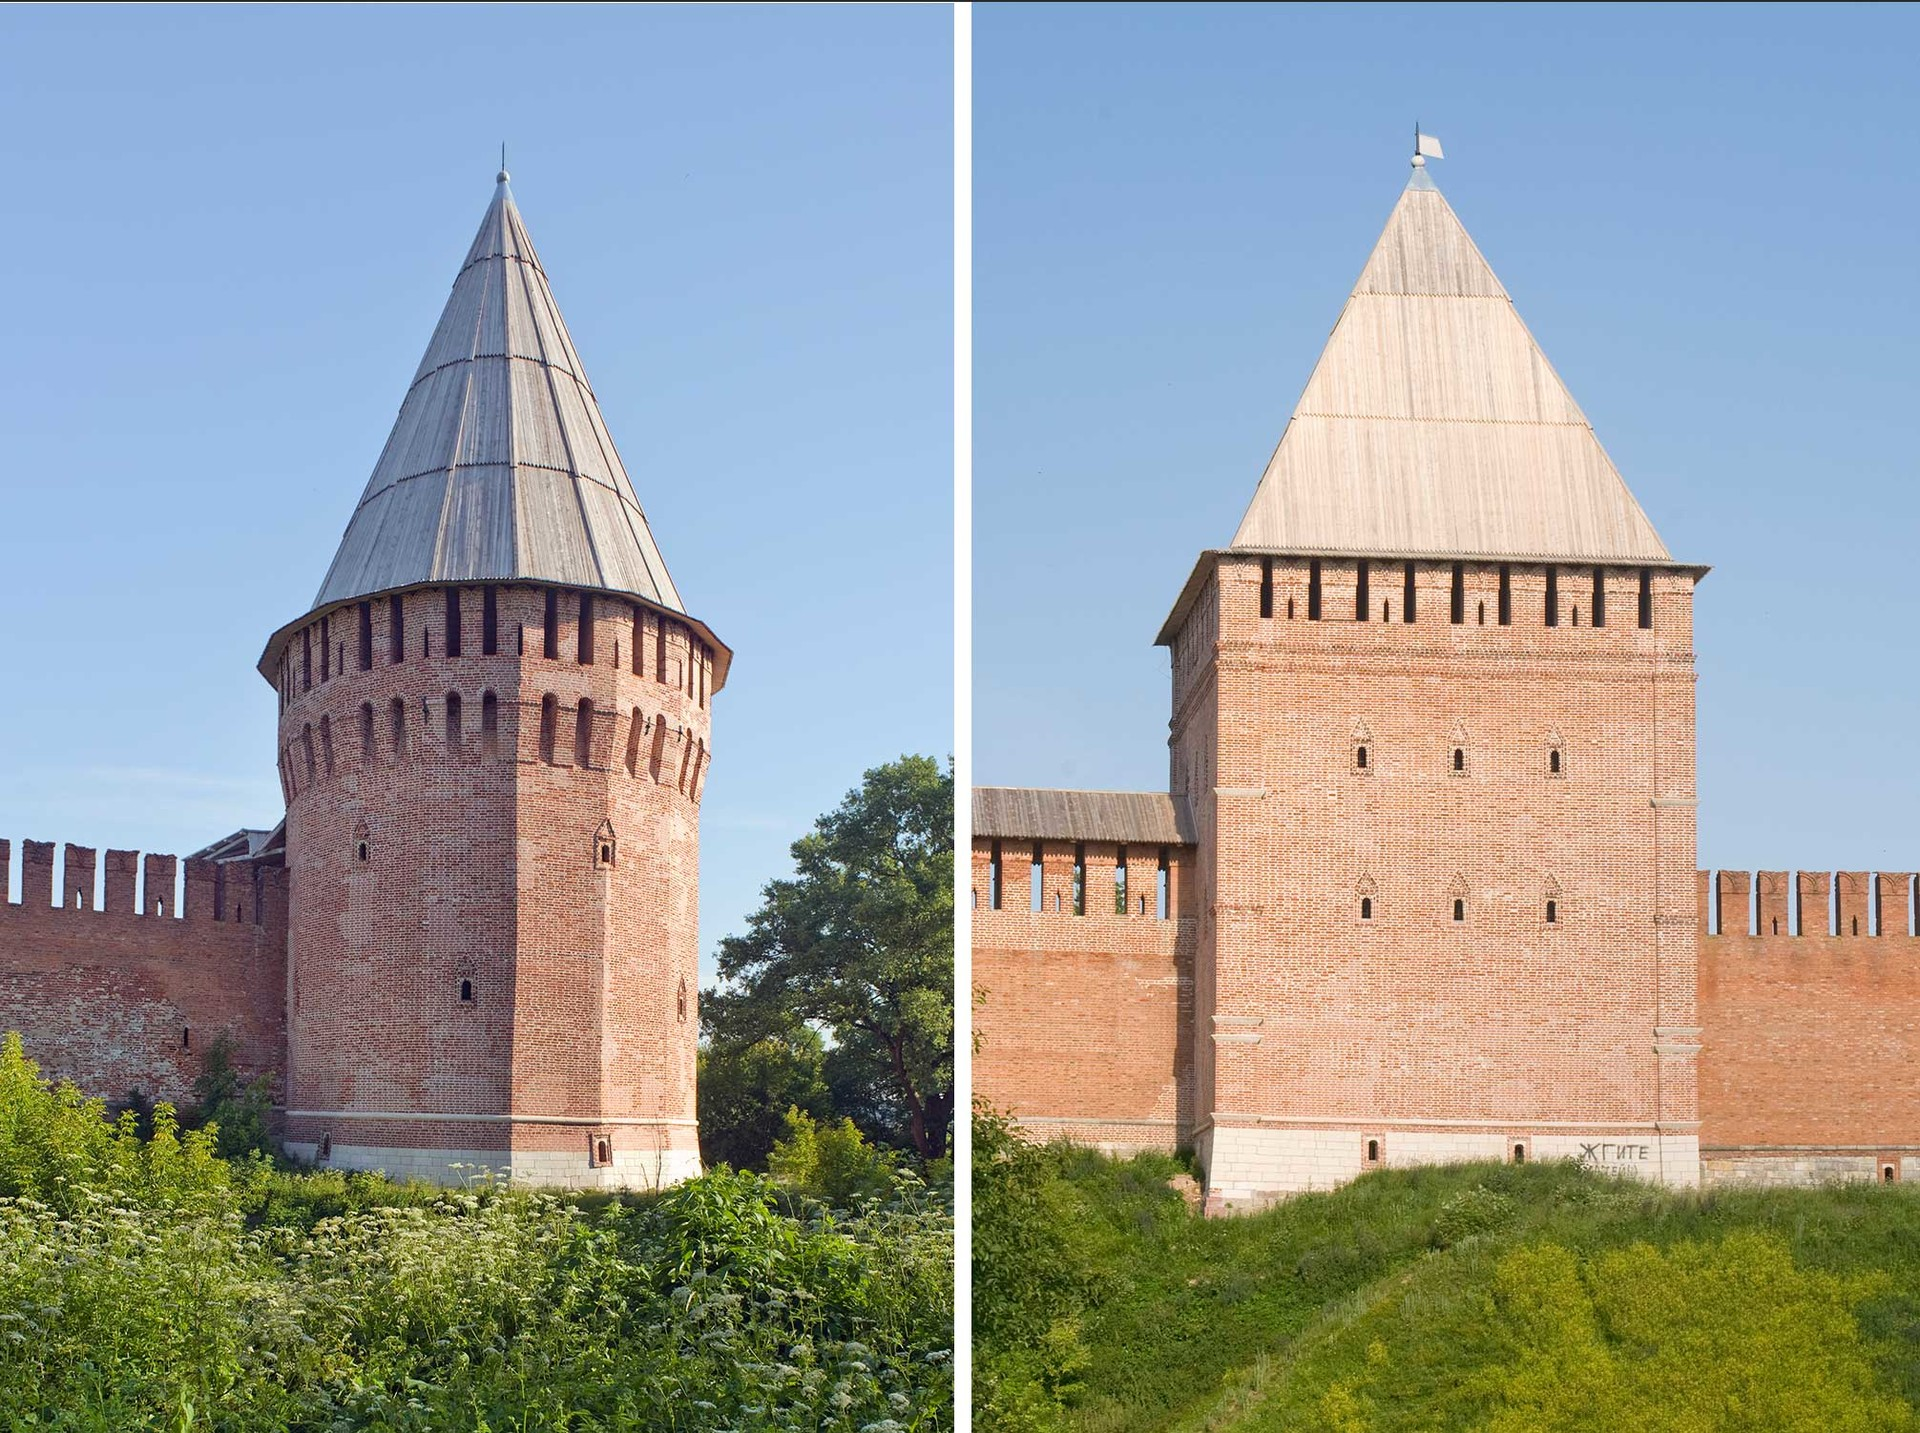 L: Smolensk citadel. Southeast corner with Altar (Belukha) Tower.  R: Smolensk citadel. East wall with Avraamy Tower. East façade. July 1, 2014